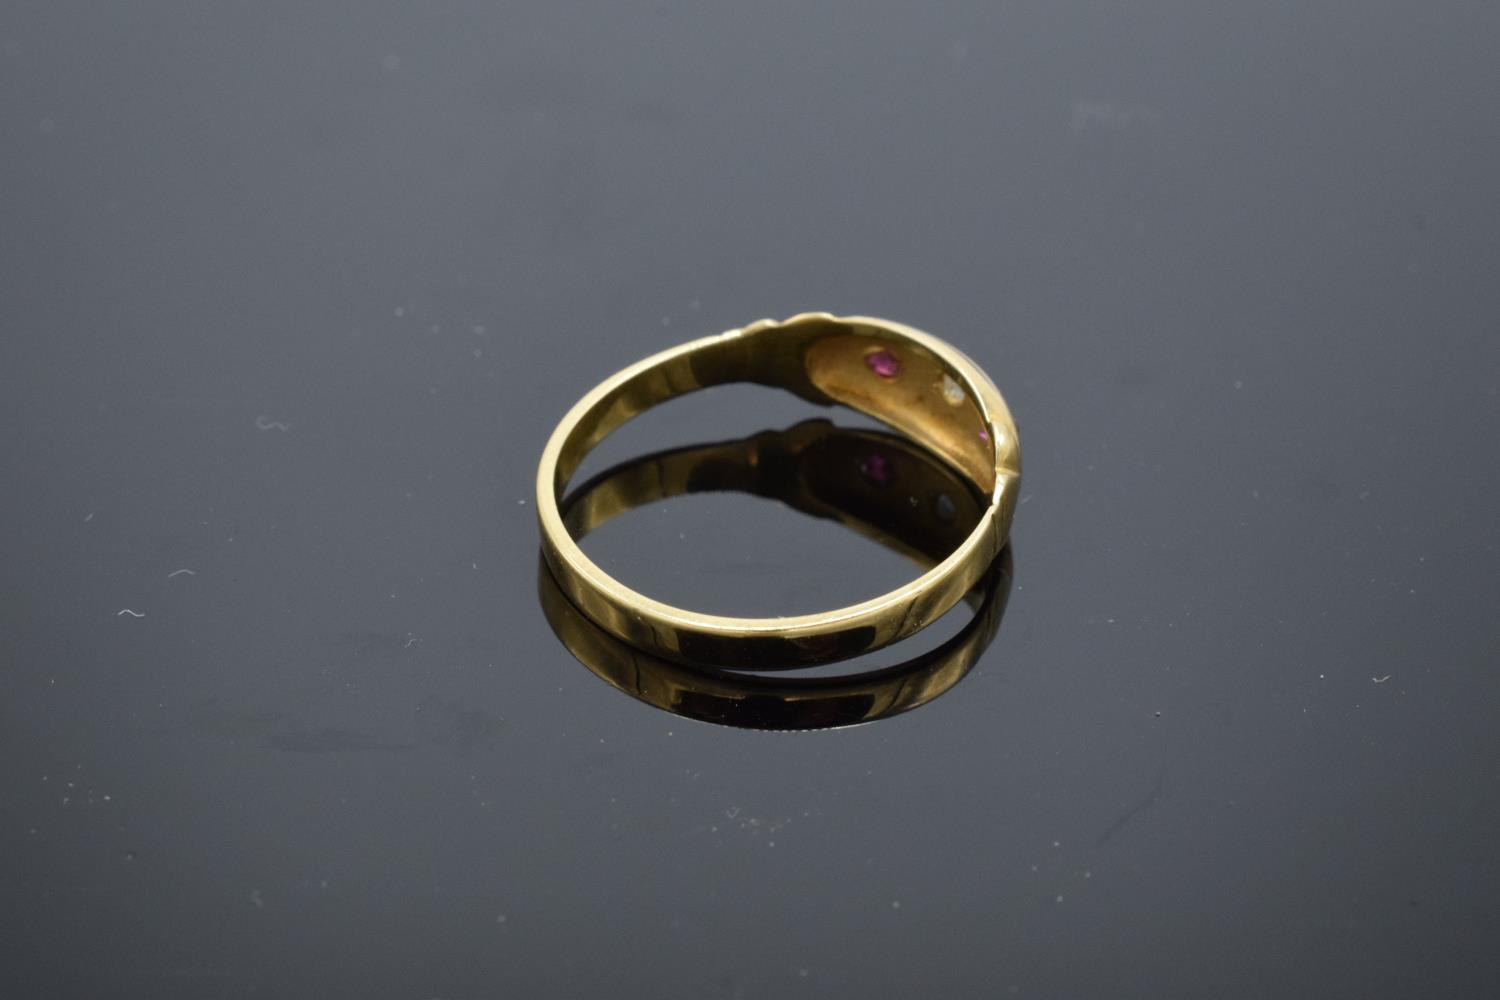 18ct gold ladies ring set with rubies and a diamond stone. UK size P/Q. Gross weight 2.2 grams. - Image 2 of 3